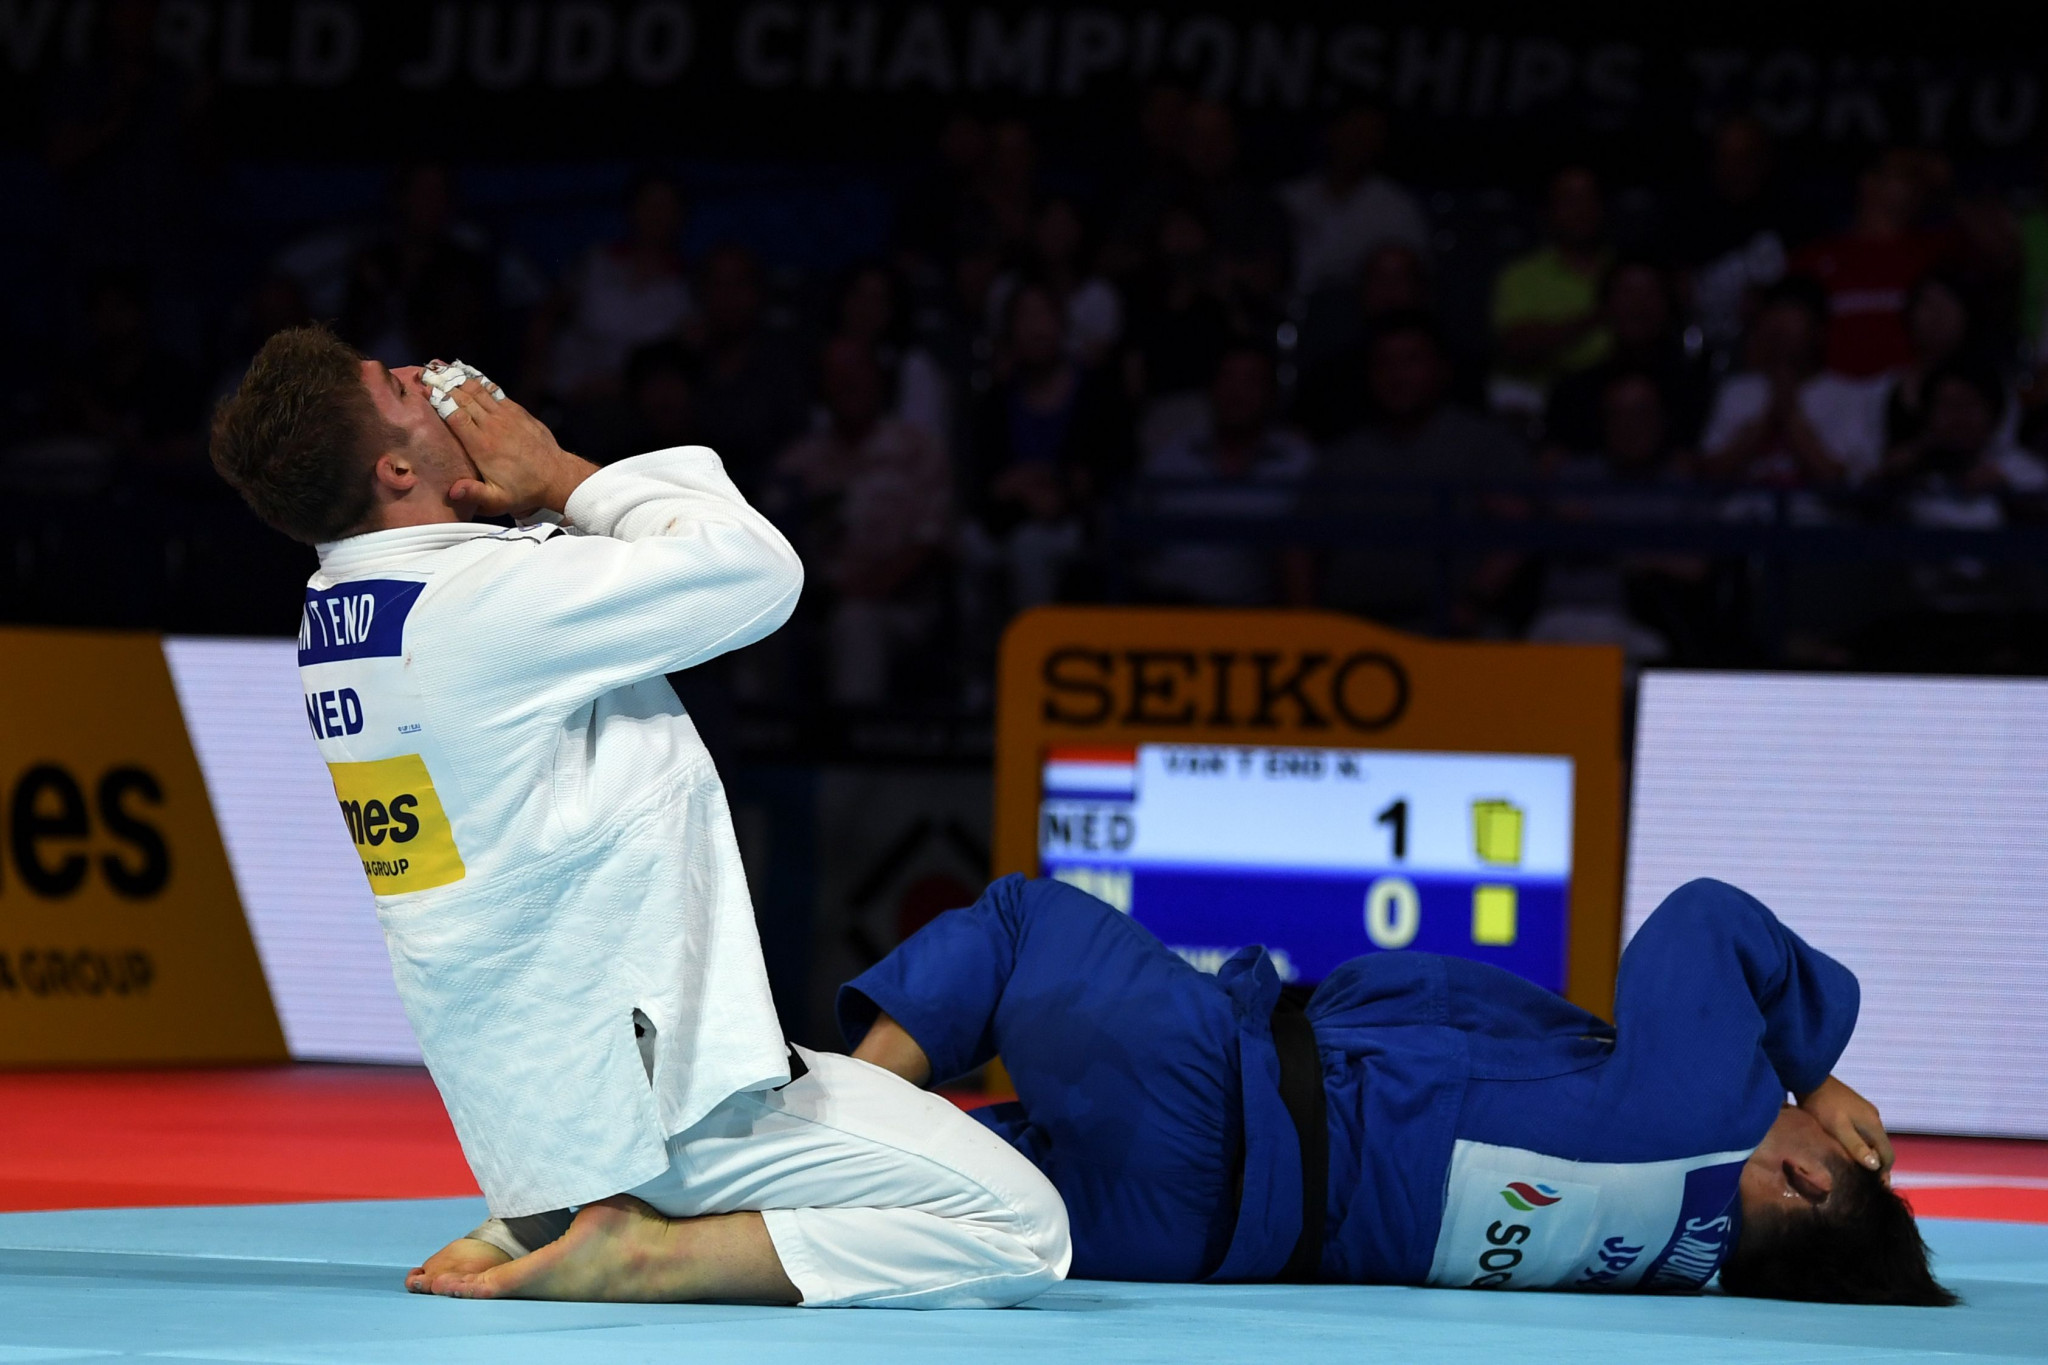 Remarkable day for European judo as France and Netherlands win IJF World Championships gold